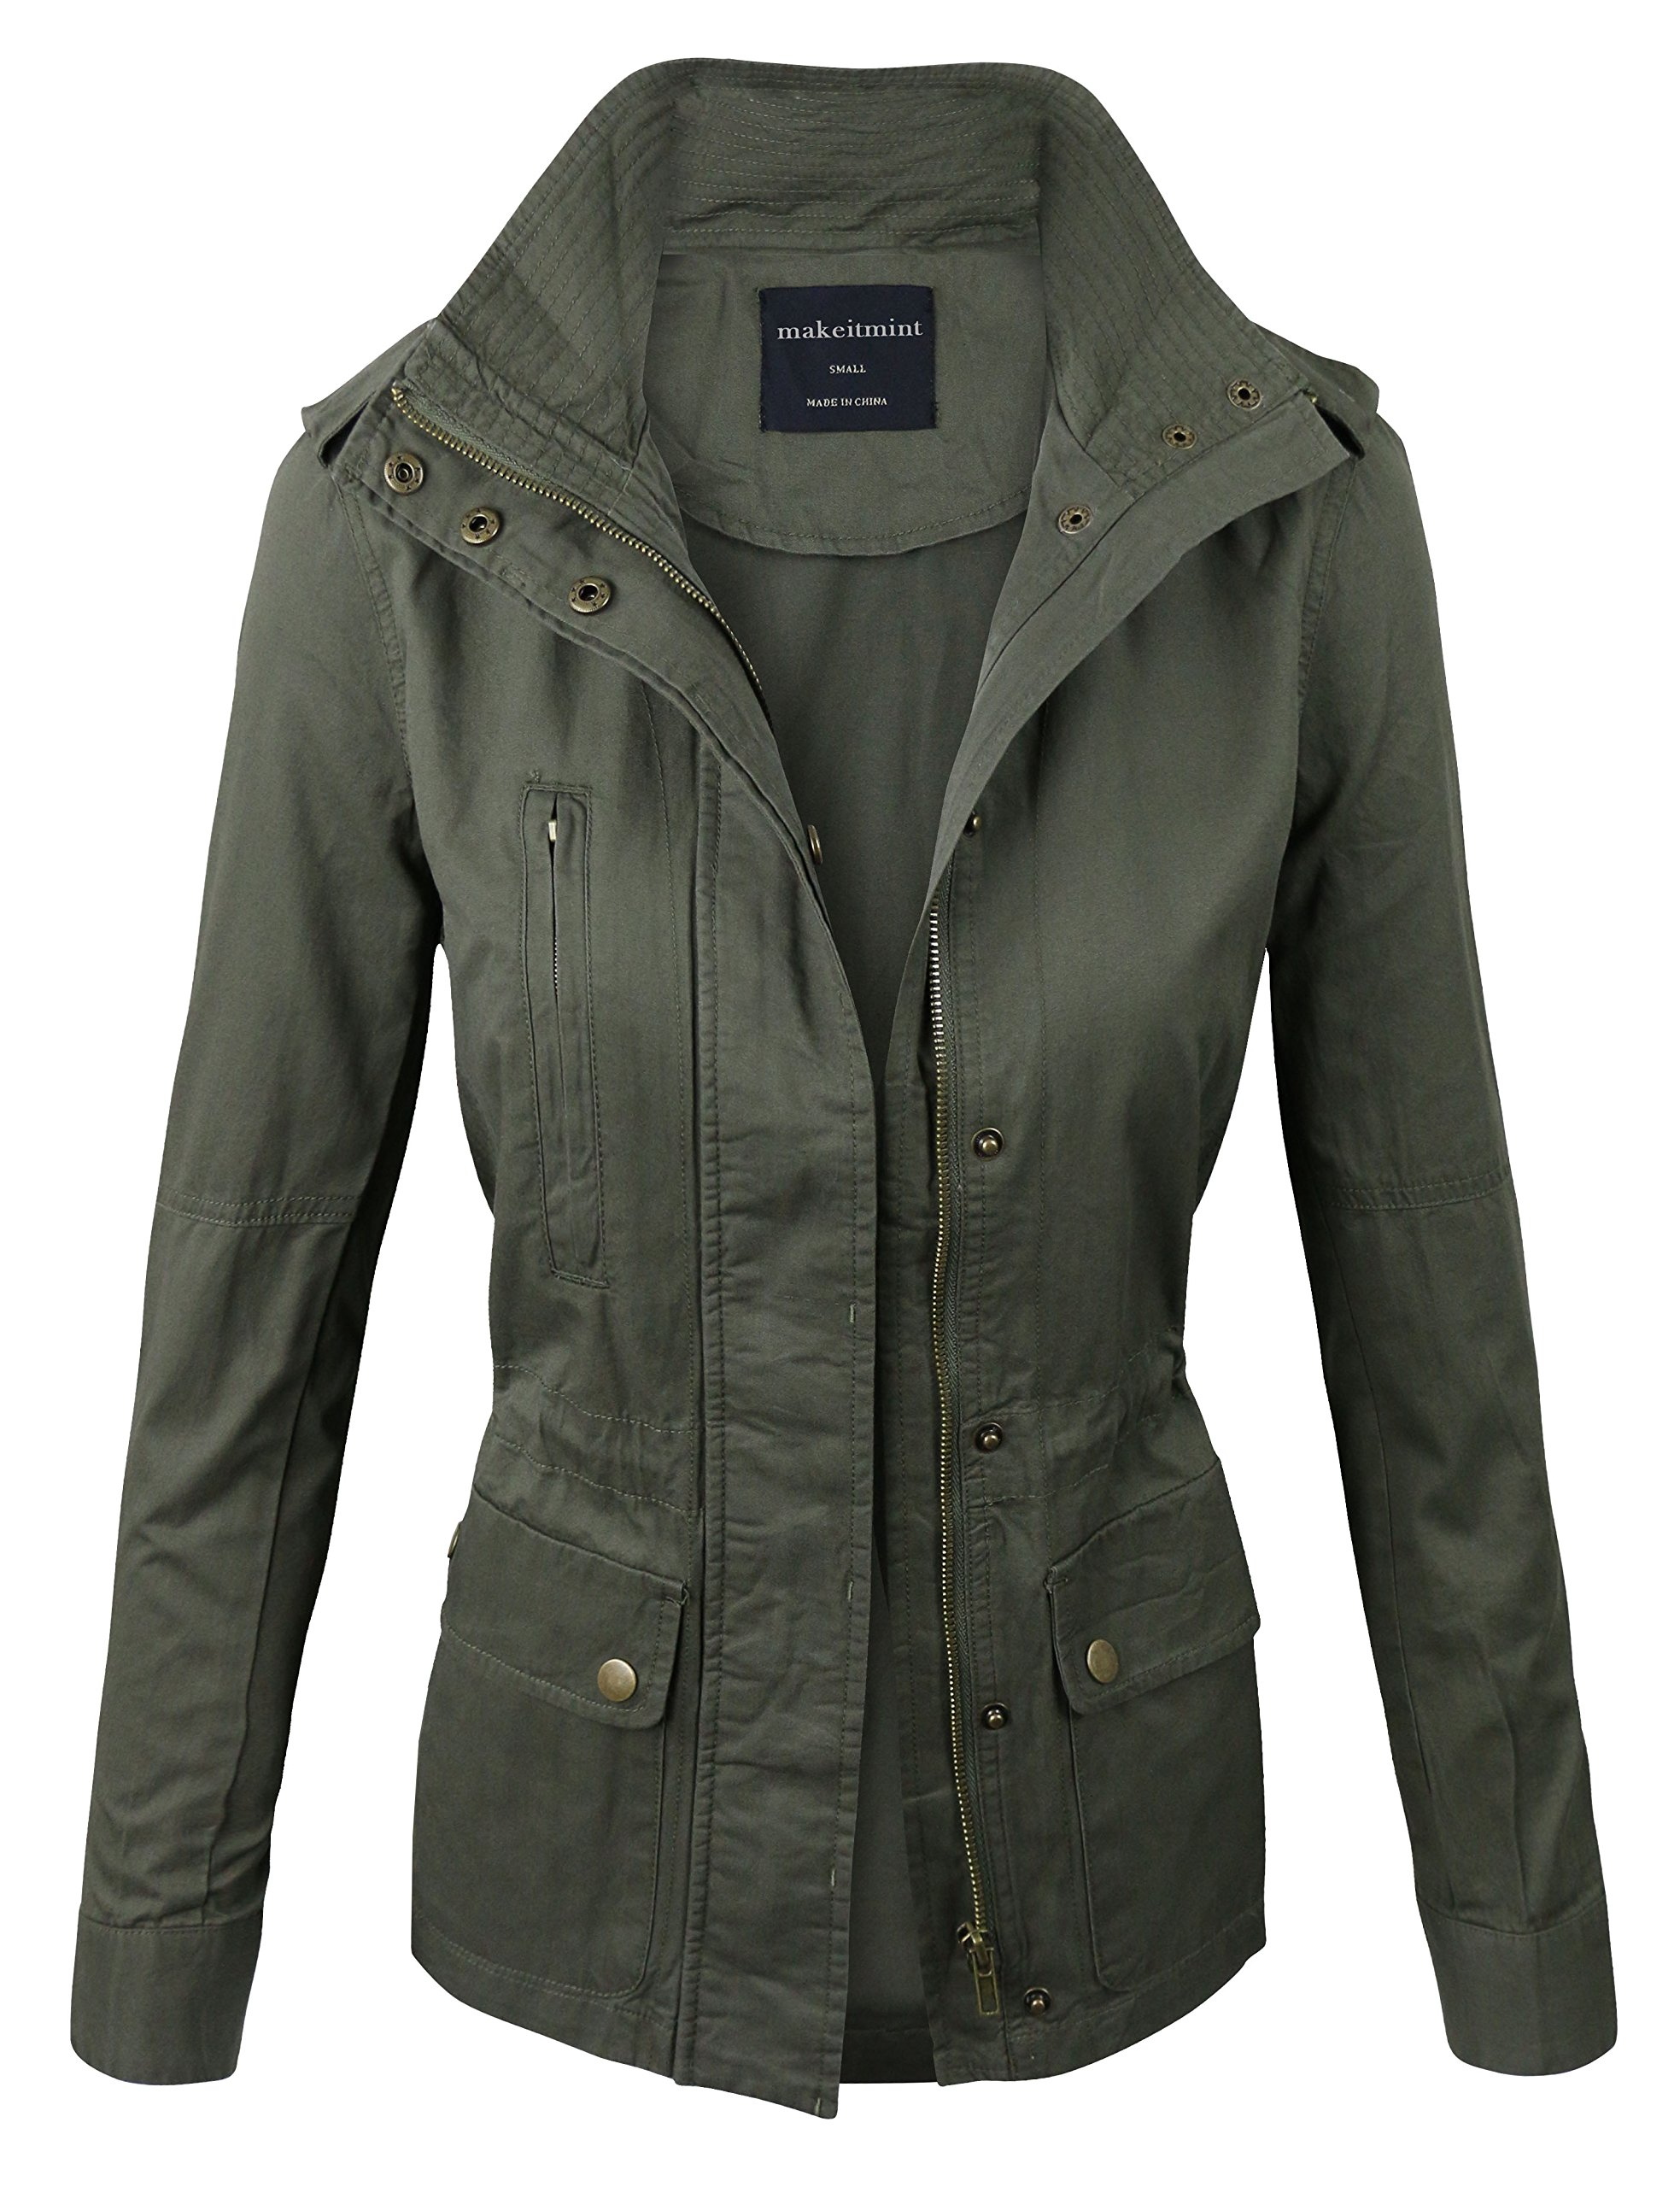 makeitmint Women's Zip Up Military Anorak Jacket w/Pockets Small Olive